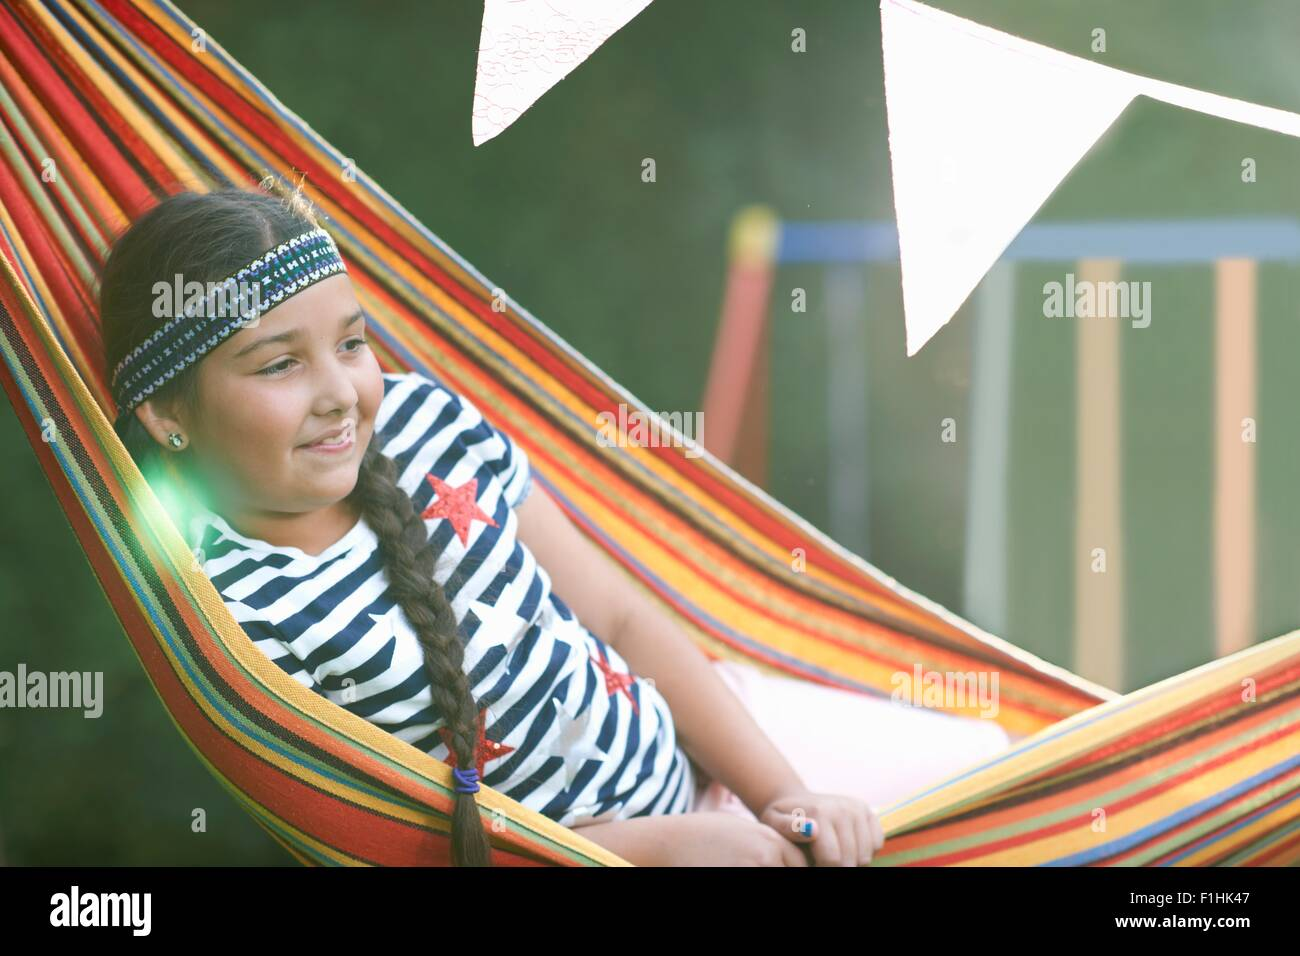 Portrait of cute girl with hairband and plait reclining in striped garden hammock - Stock Image